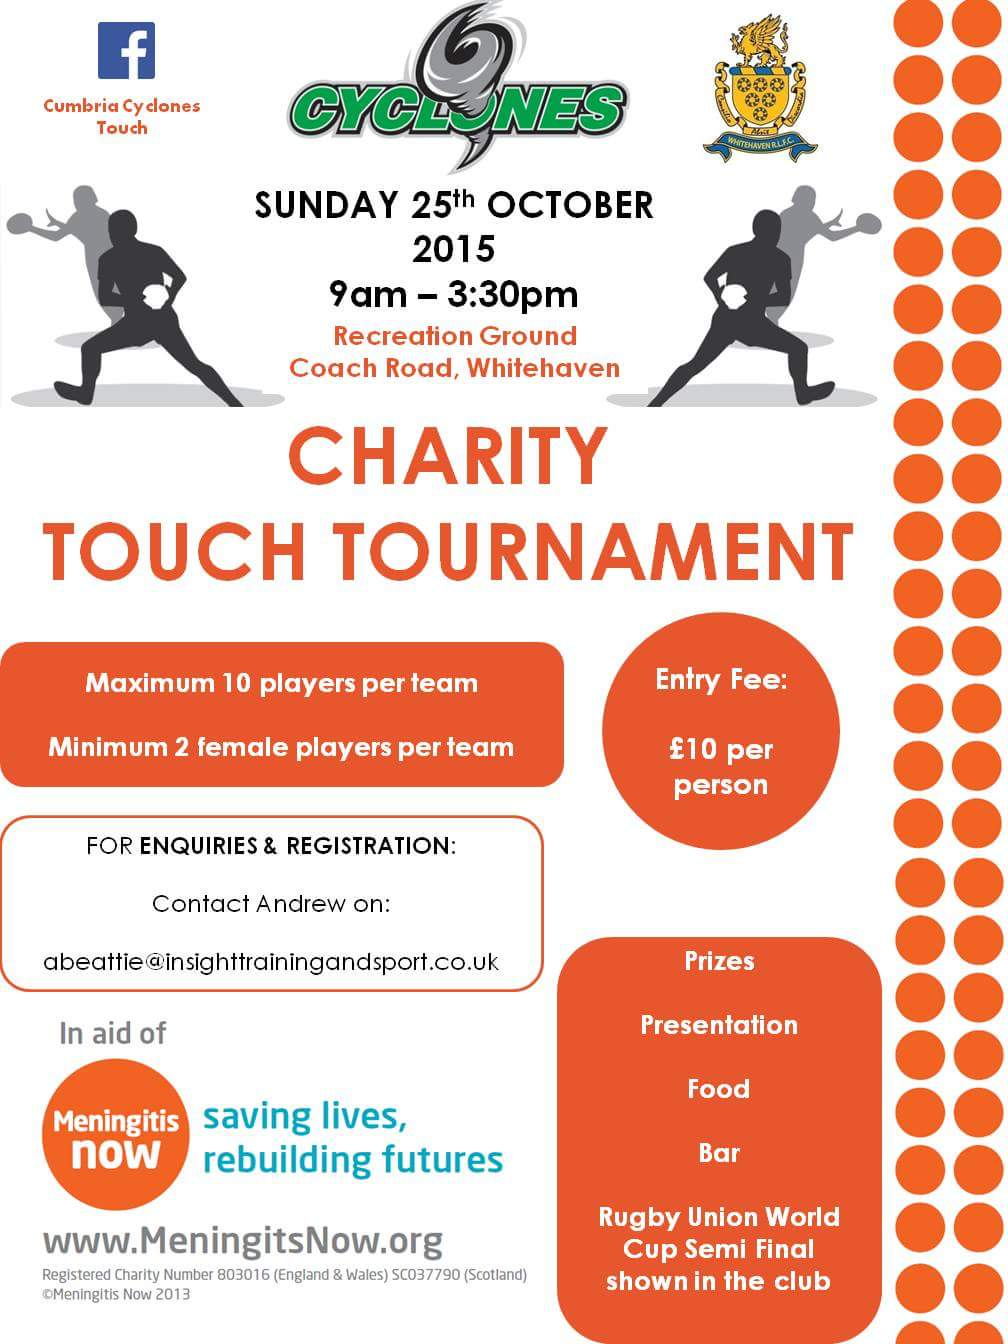 Cumbria Cyclone Charity Touch Tournament